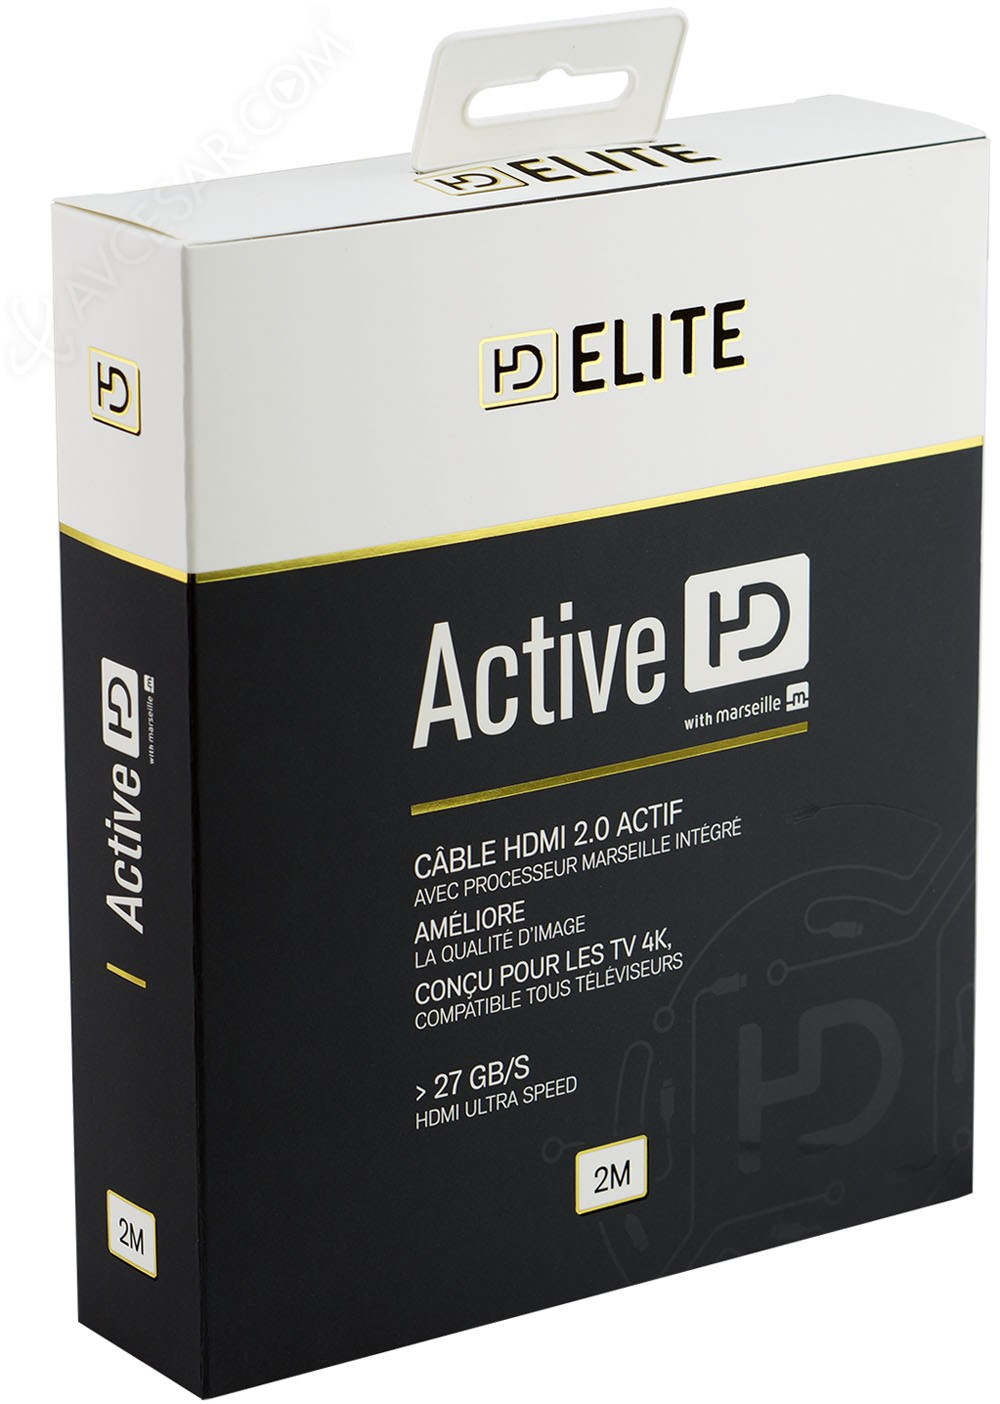 hd-elite-active-hd-cable-avec-upscaler-marseille-integre_123627.jpg